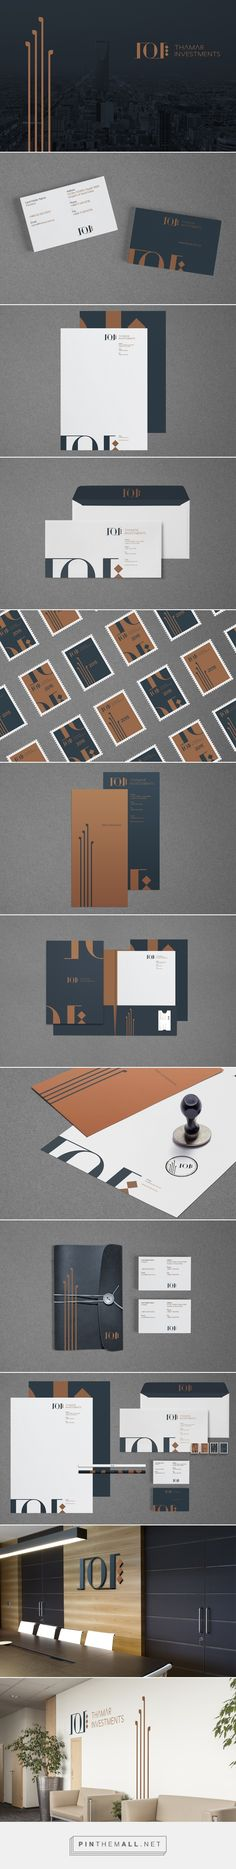 Thamar Investments Branding by Mohd Almousa | Fivestar Branding Agency – Design and Branding Agency & Curated Inspiration Gallery